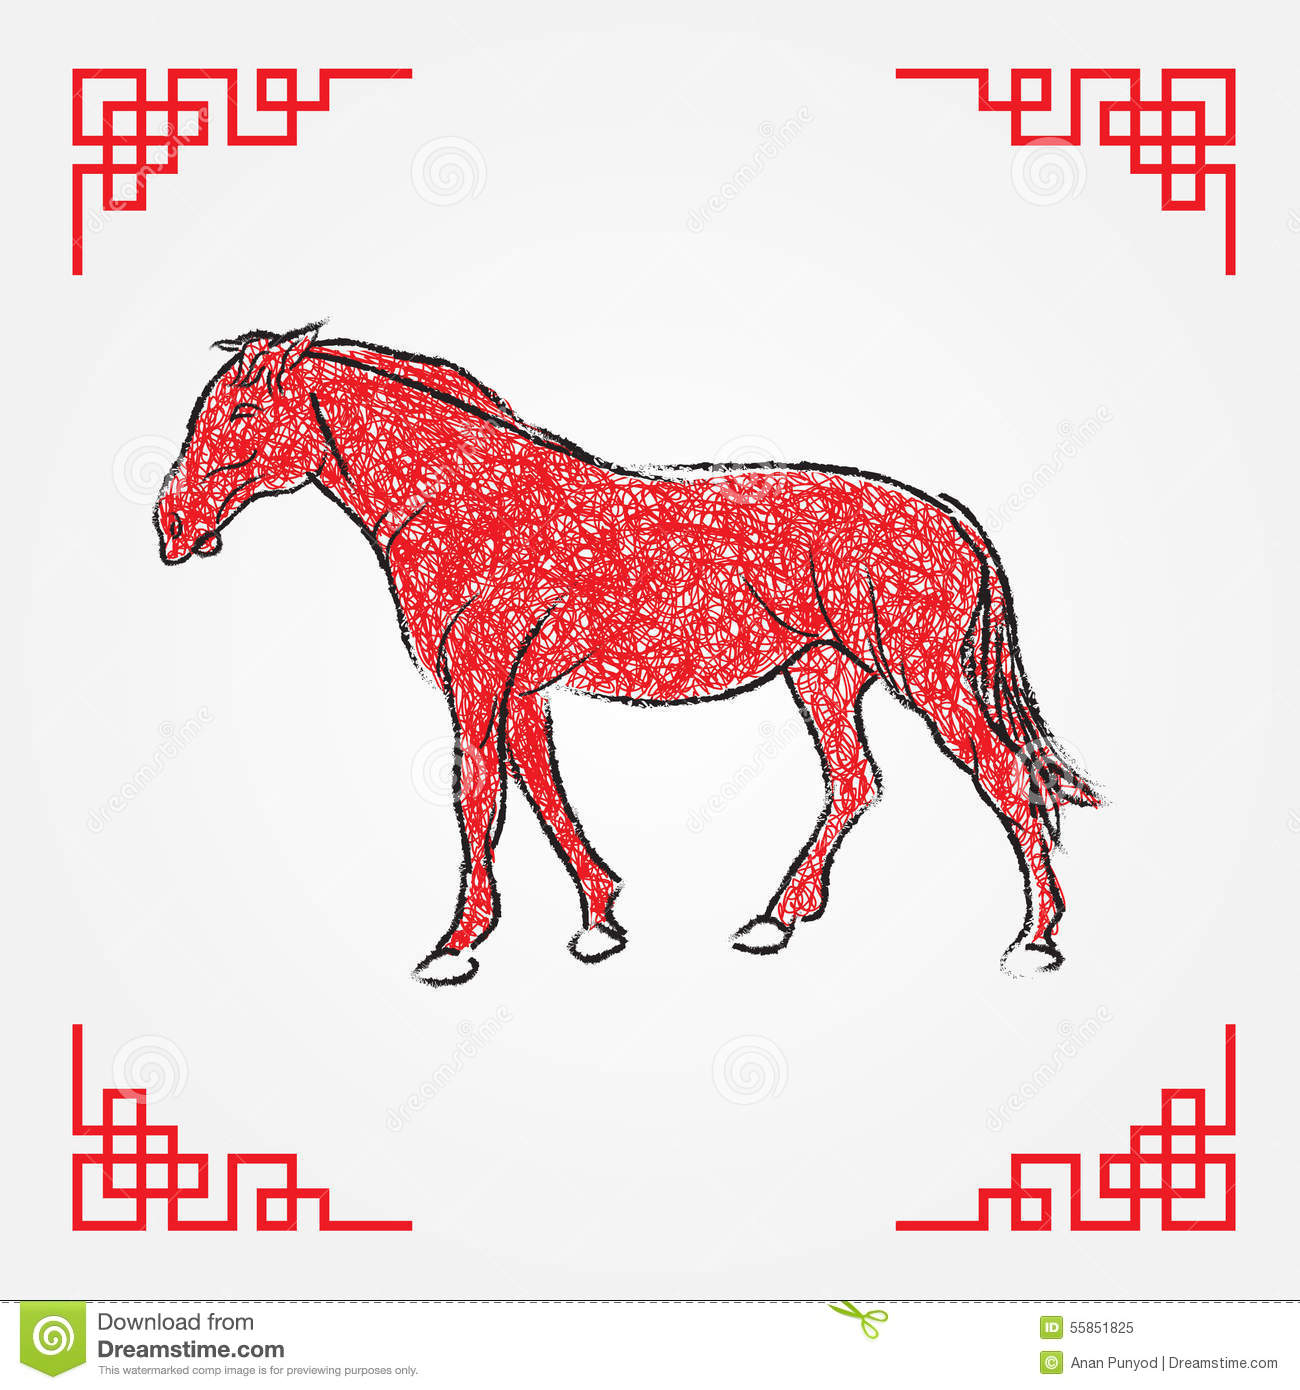 Drawing Red Lines With Green Ink : Red ink drawing line art horse zodiac stock vector